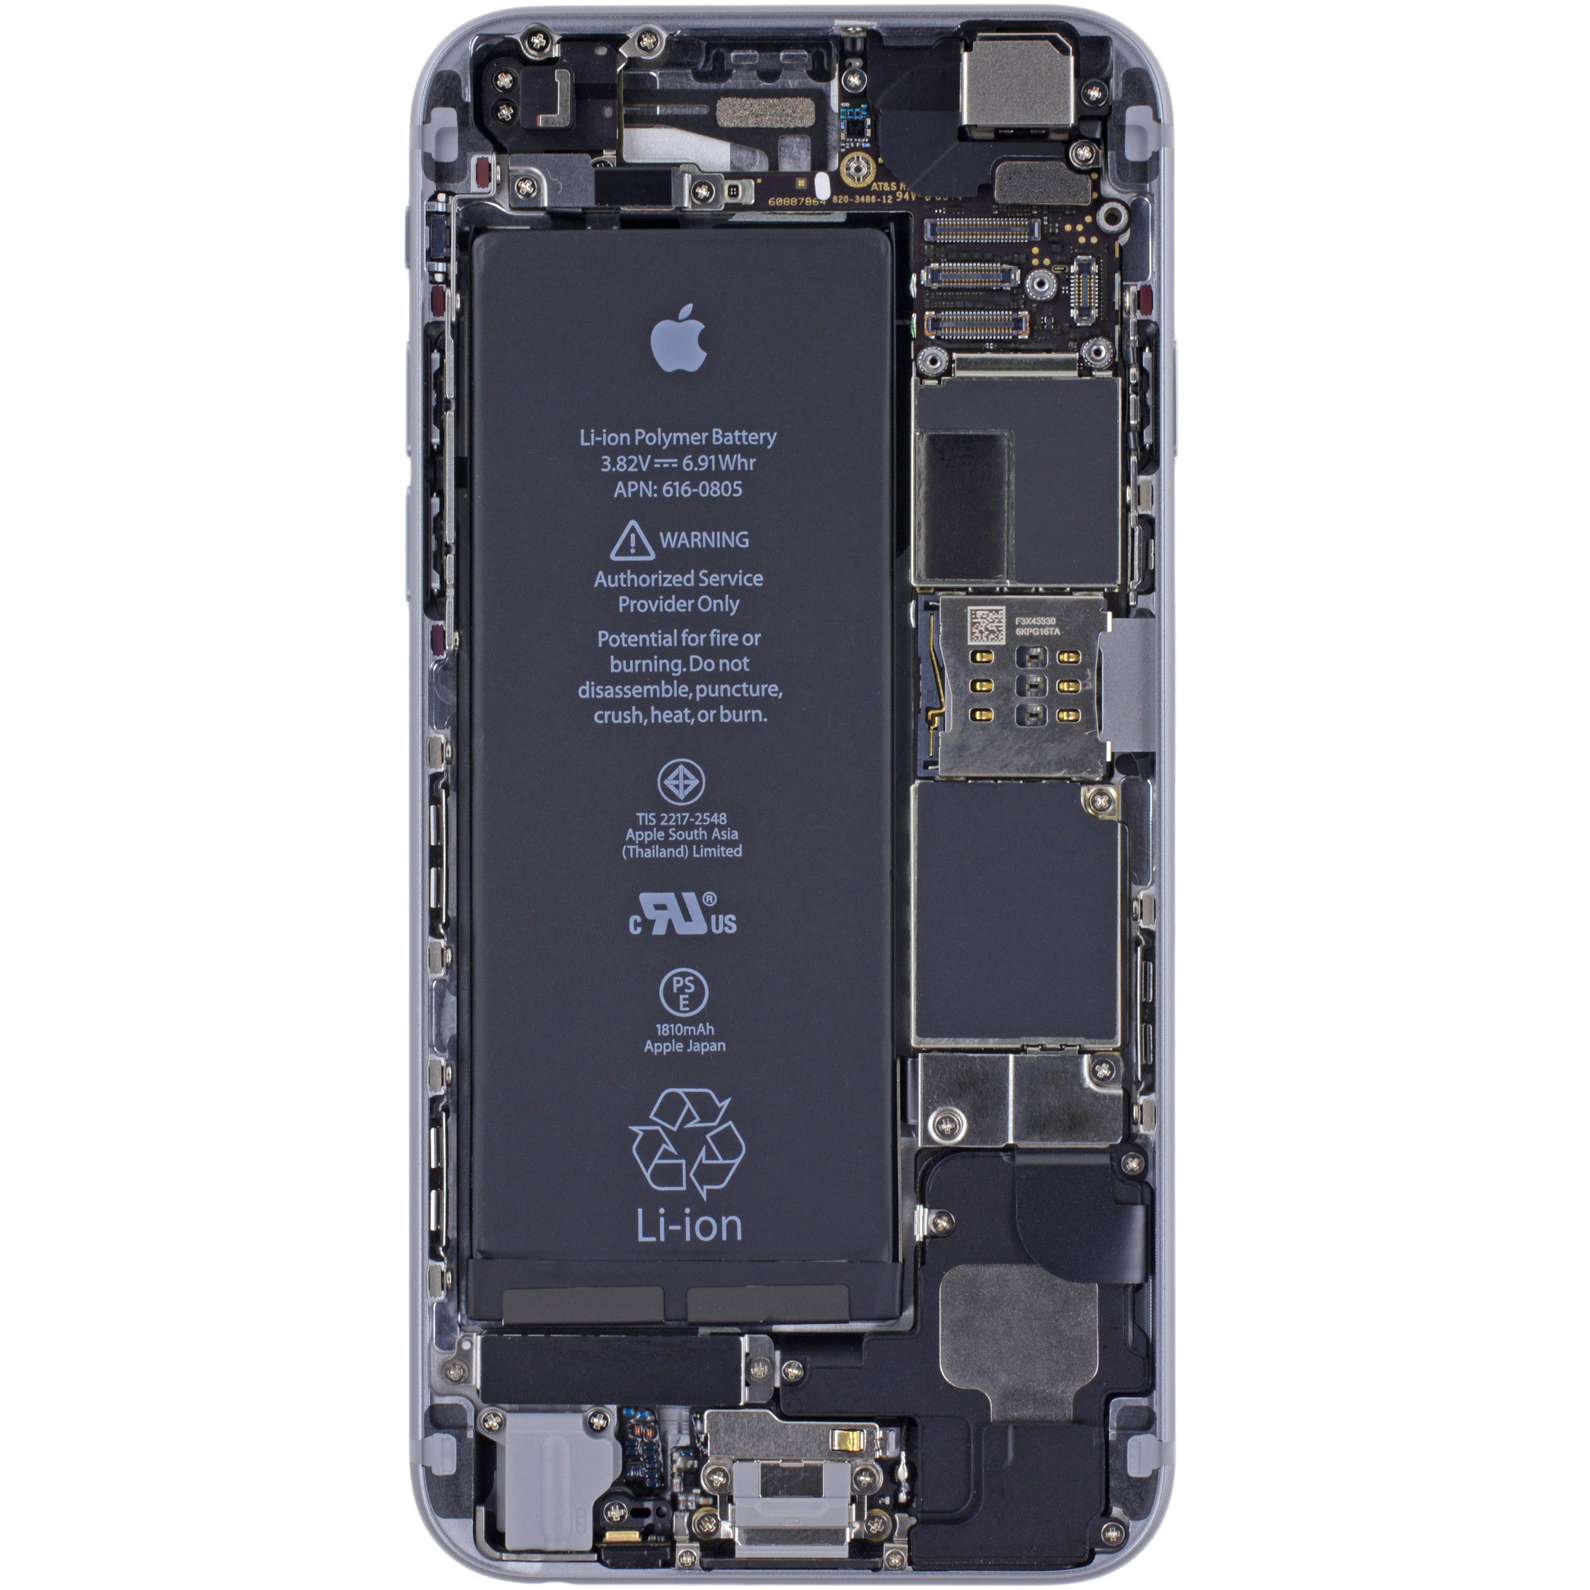 Www etradesupply com media uploaded iphone 5c vs iphone 5 screen jpg - X Ray Vision Internals Wallpaper For The Iphone 6 Iphone 6 Plus Ipad Air Download